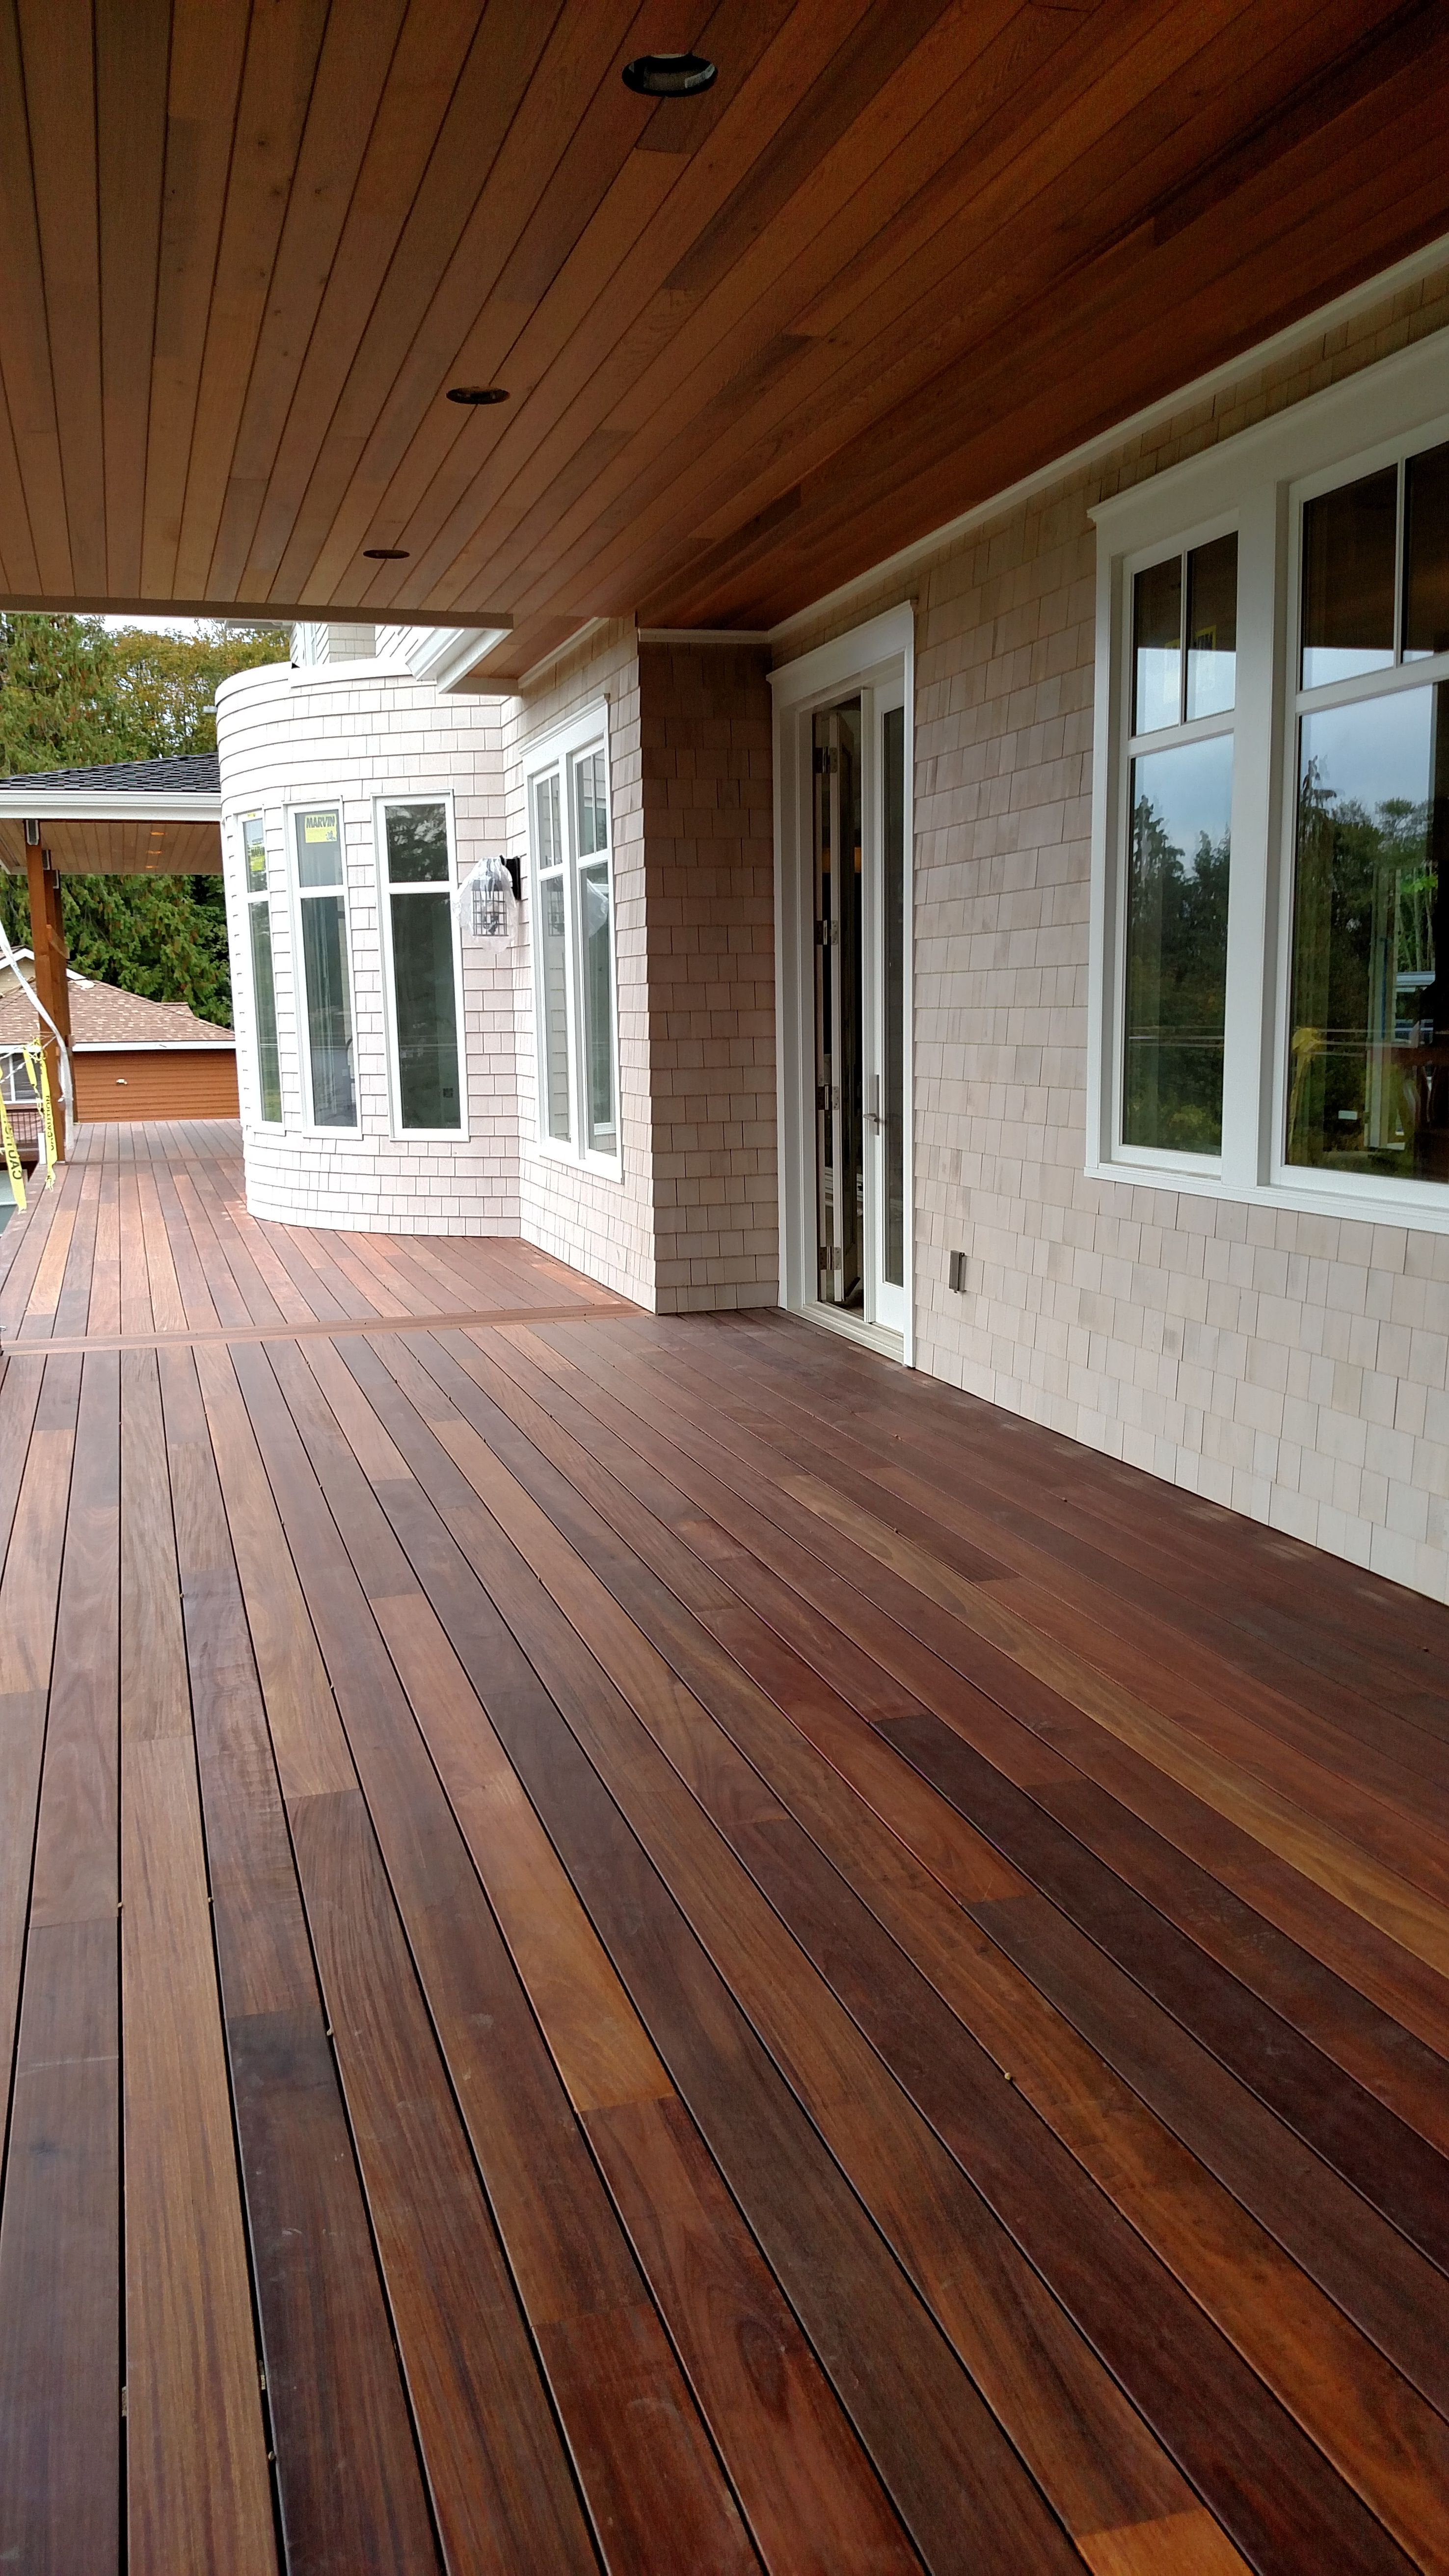 Ipe Deck Stain Colors • Decks Ideas Exterior Deck Stain Colors on cabot exterior stain colors, exterior deck doors, exterior wood deck coatings, best deck colors, semi-transparent stain colors, exterior home stain colors, exterior deck paint, exterior deck flooring, exterior olympic stain colors, exterior doors colors, exterior deck products, pool stain colors, exterior stain color chart, woodscapes exterior stain colors, exterior stain colors samples, exterior deck hardware, penofin stain colors, mahogany stain colors, kitchen stain colors, fireplace stain colors,